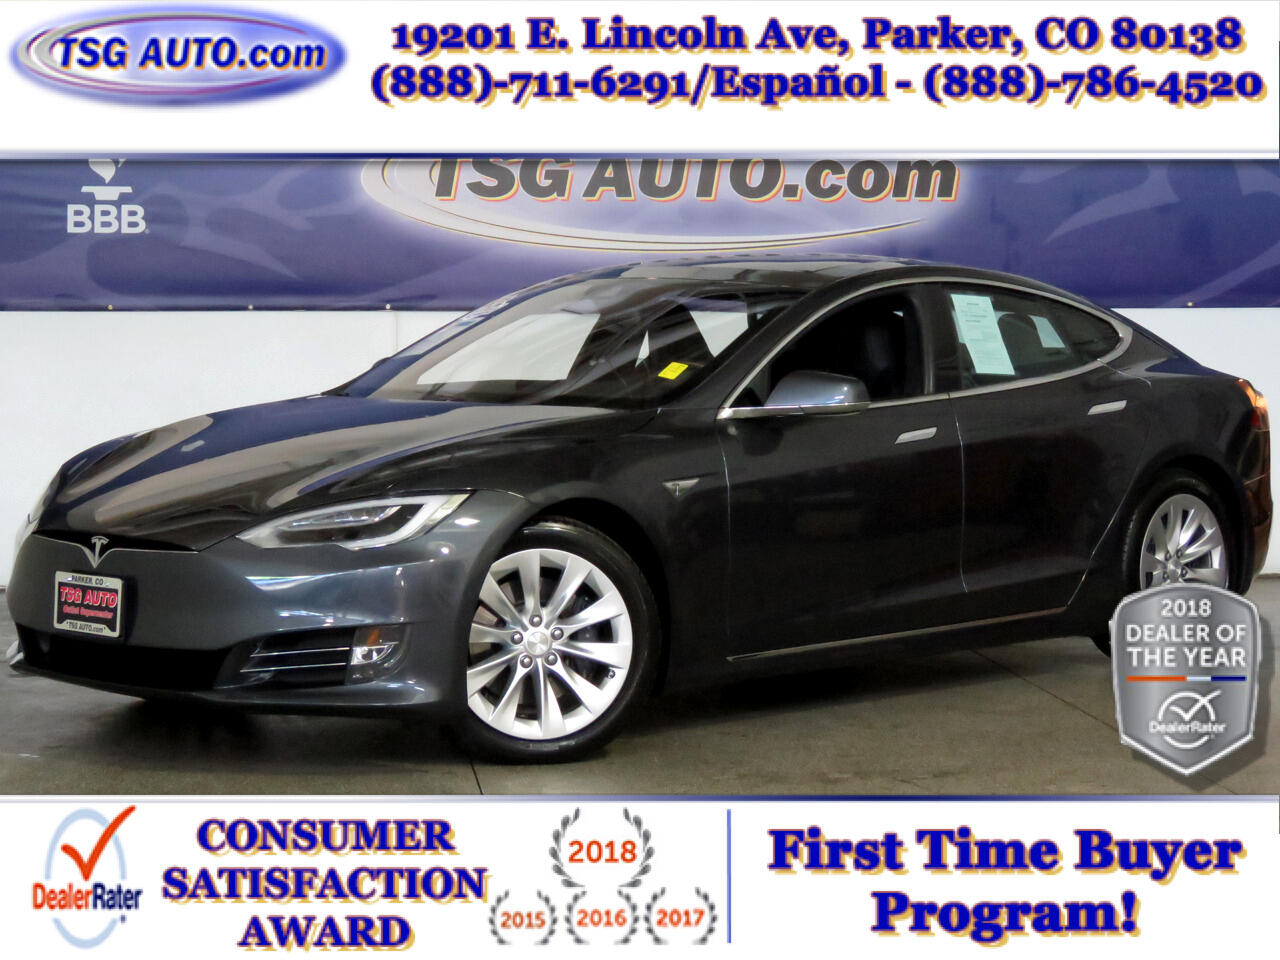 2016 Tesla Model S 4dr Sdn AWD 90D